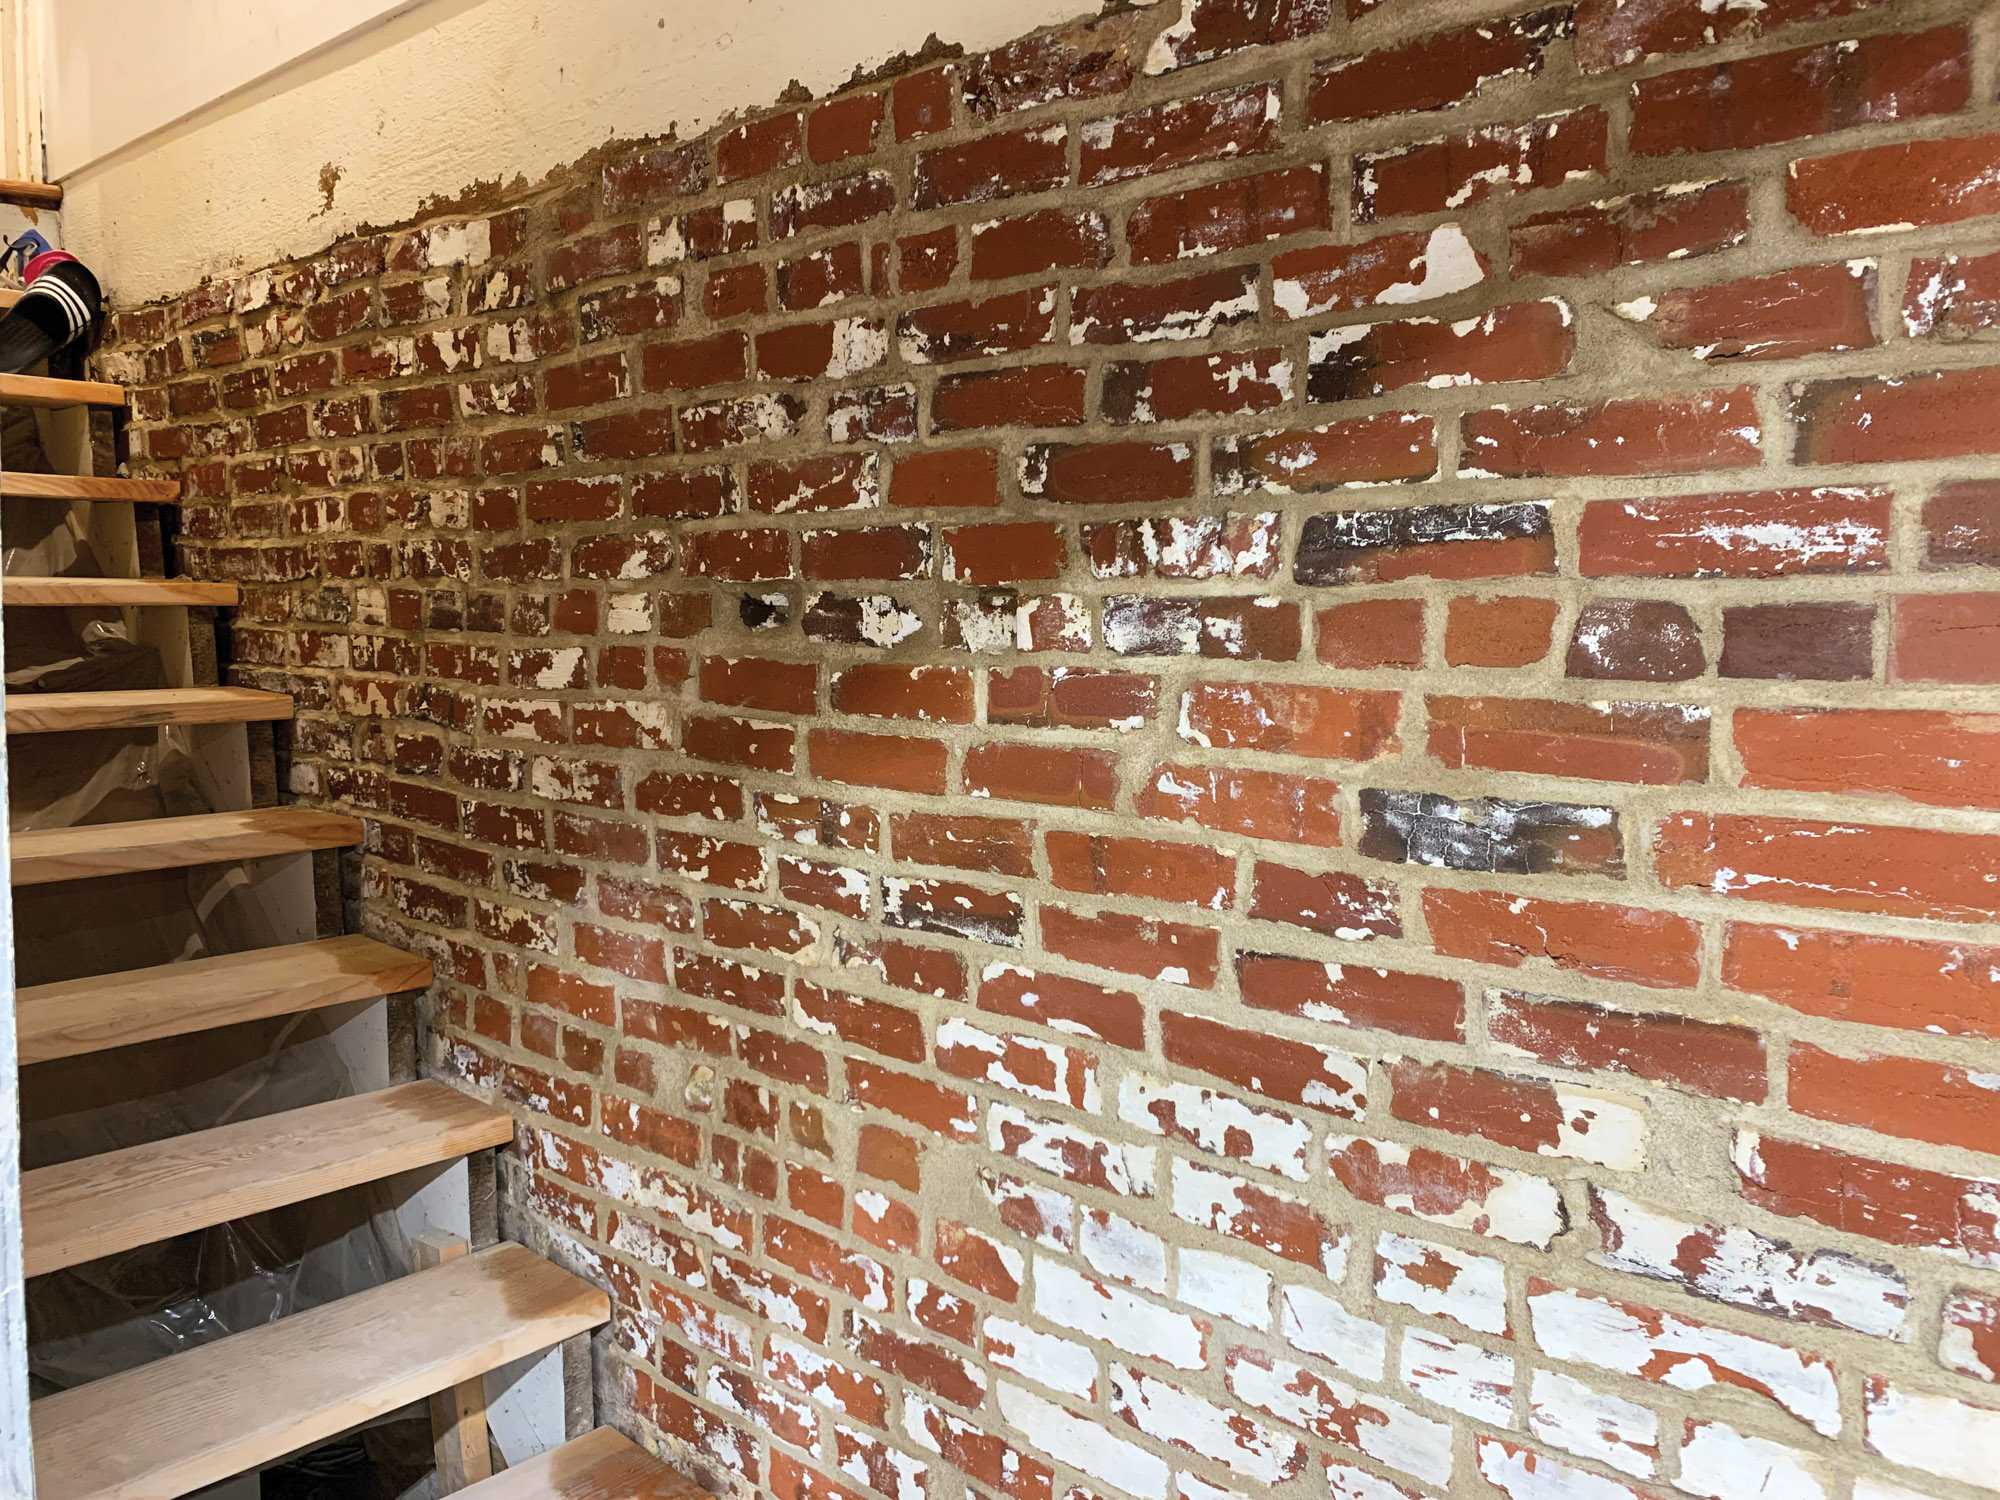 The pattern may be a bit irregular, but the brick in the author's basement is securely repointed, clearing the way for a new project: building a long-anticipated woodworking shop.